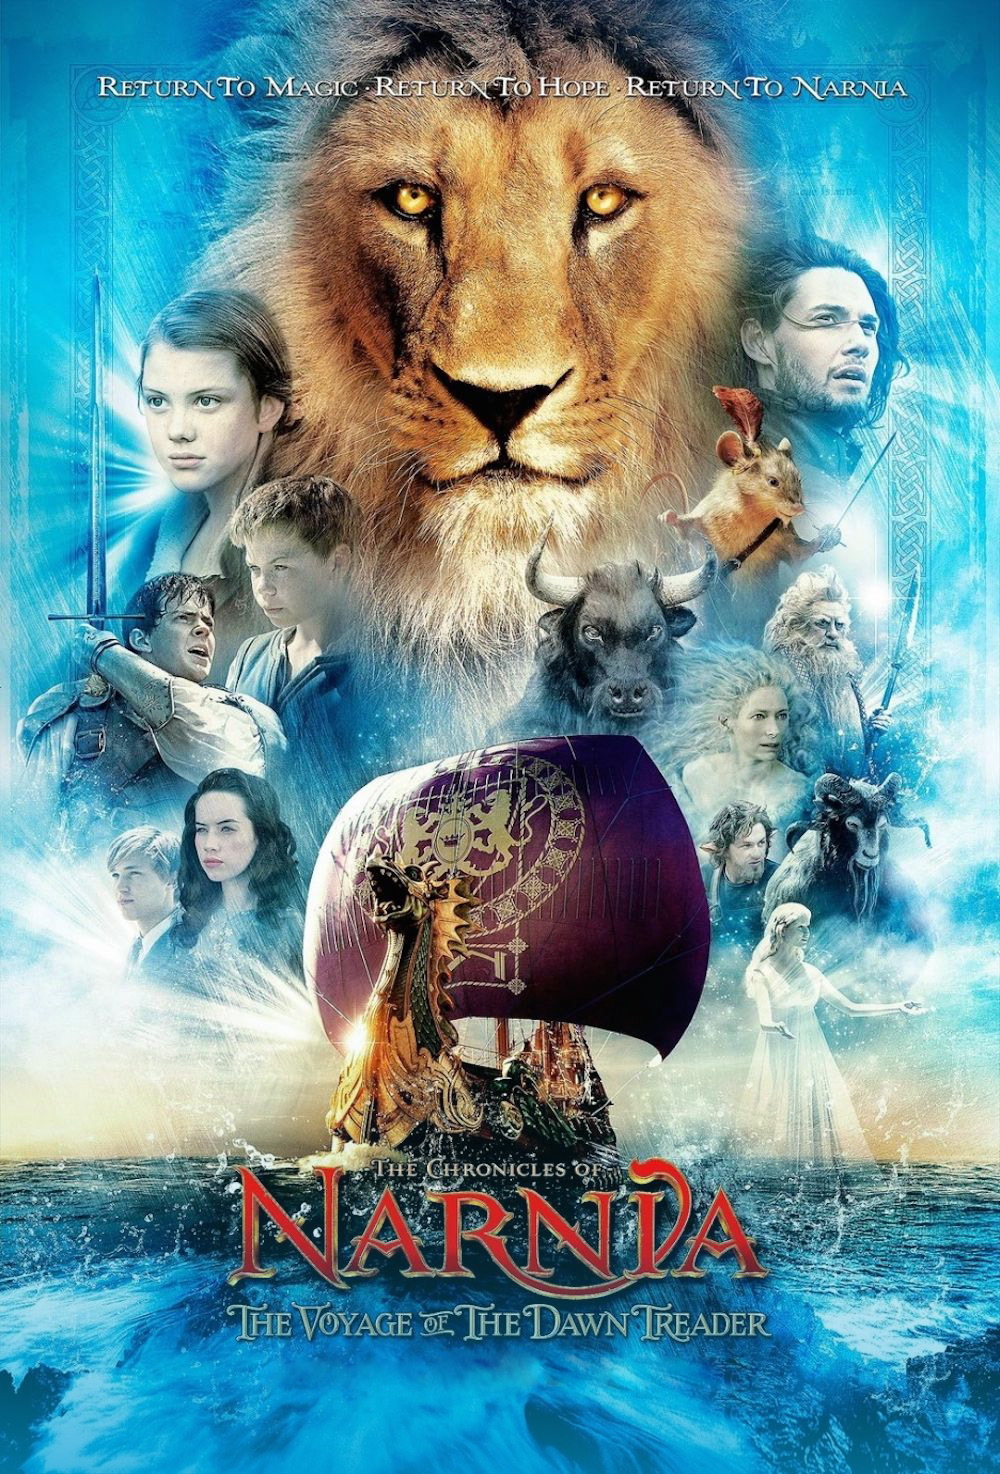 The Chronicles of Narnia: The Voyage of the Dawn Treader [2010] [DVDR] [NTSC] [Latino]